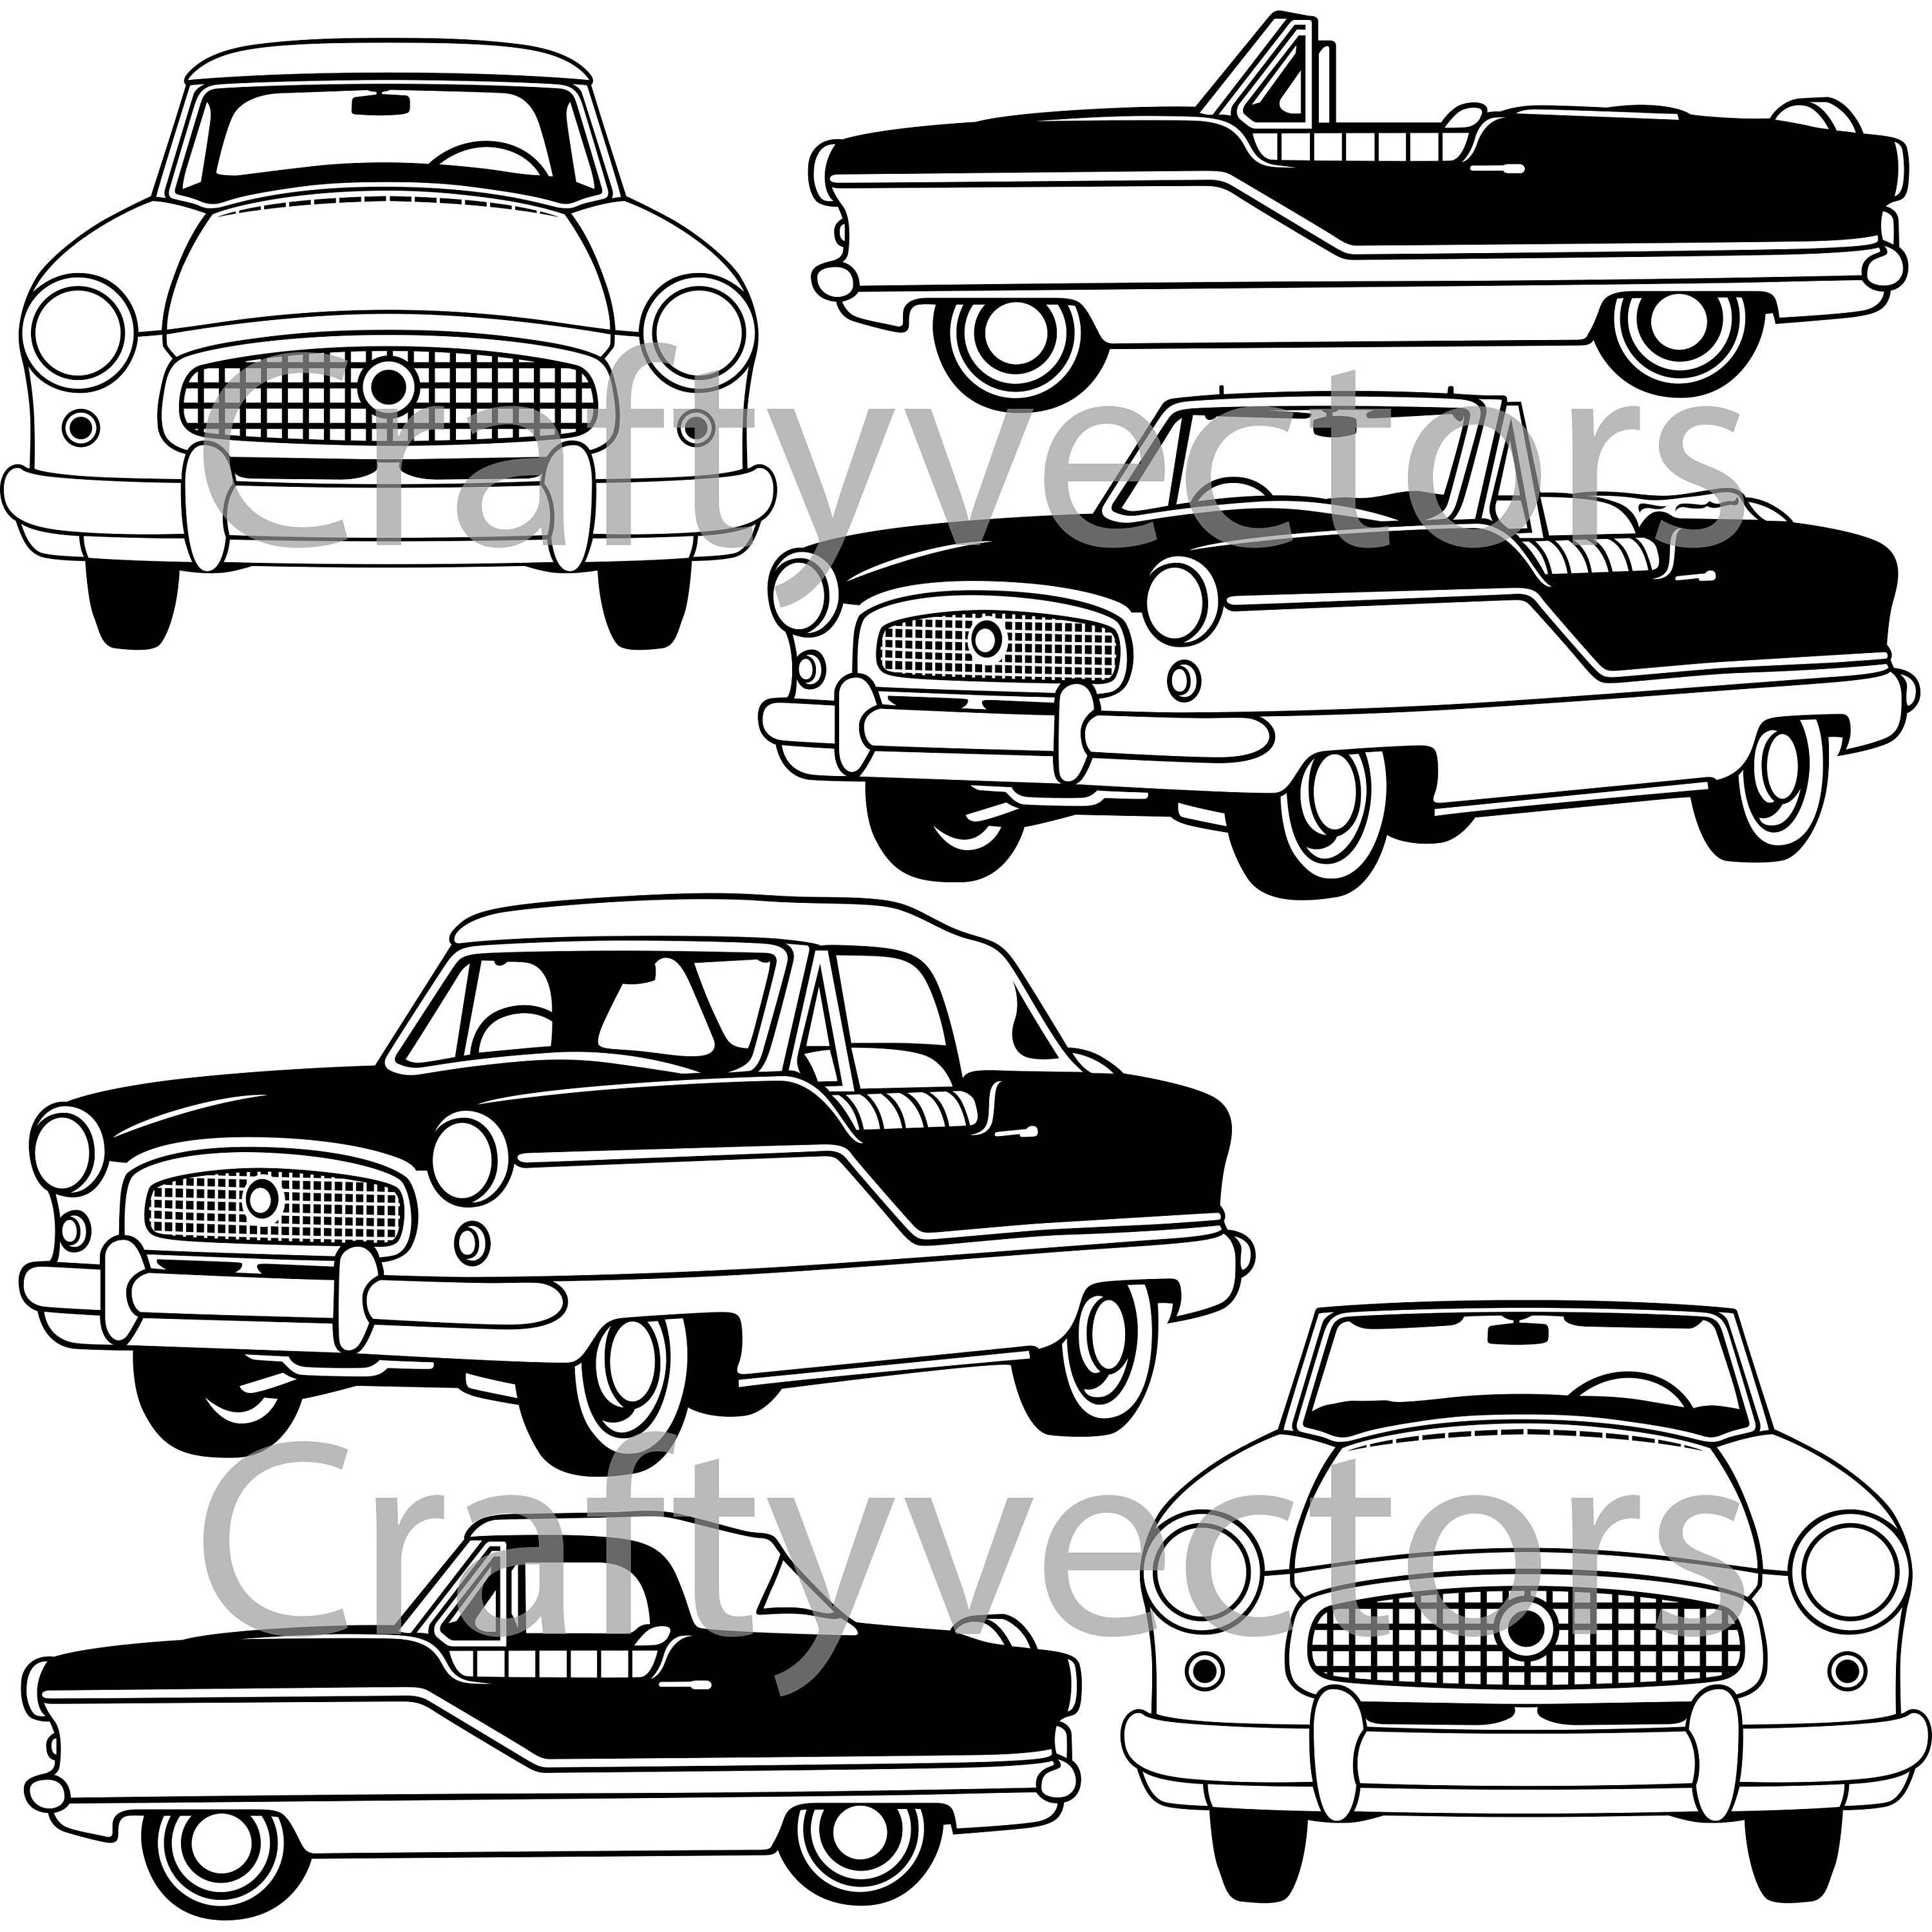 nash metropolitan convertible 1961 vector file etsy 1954 Chrysler Convertible for Sale 50